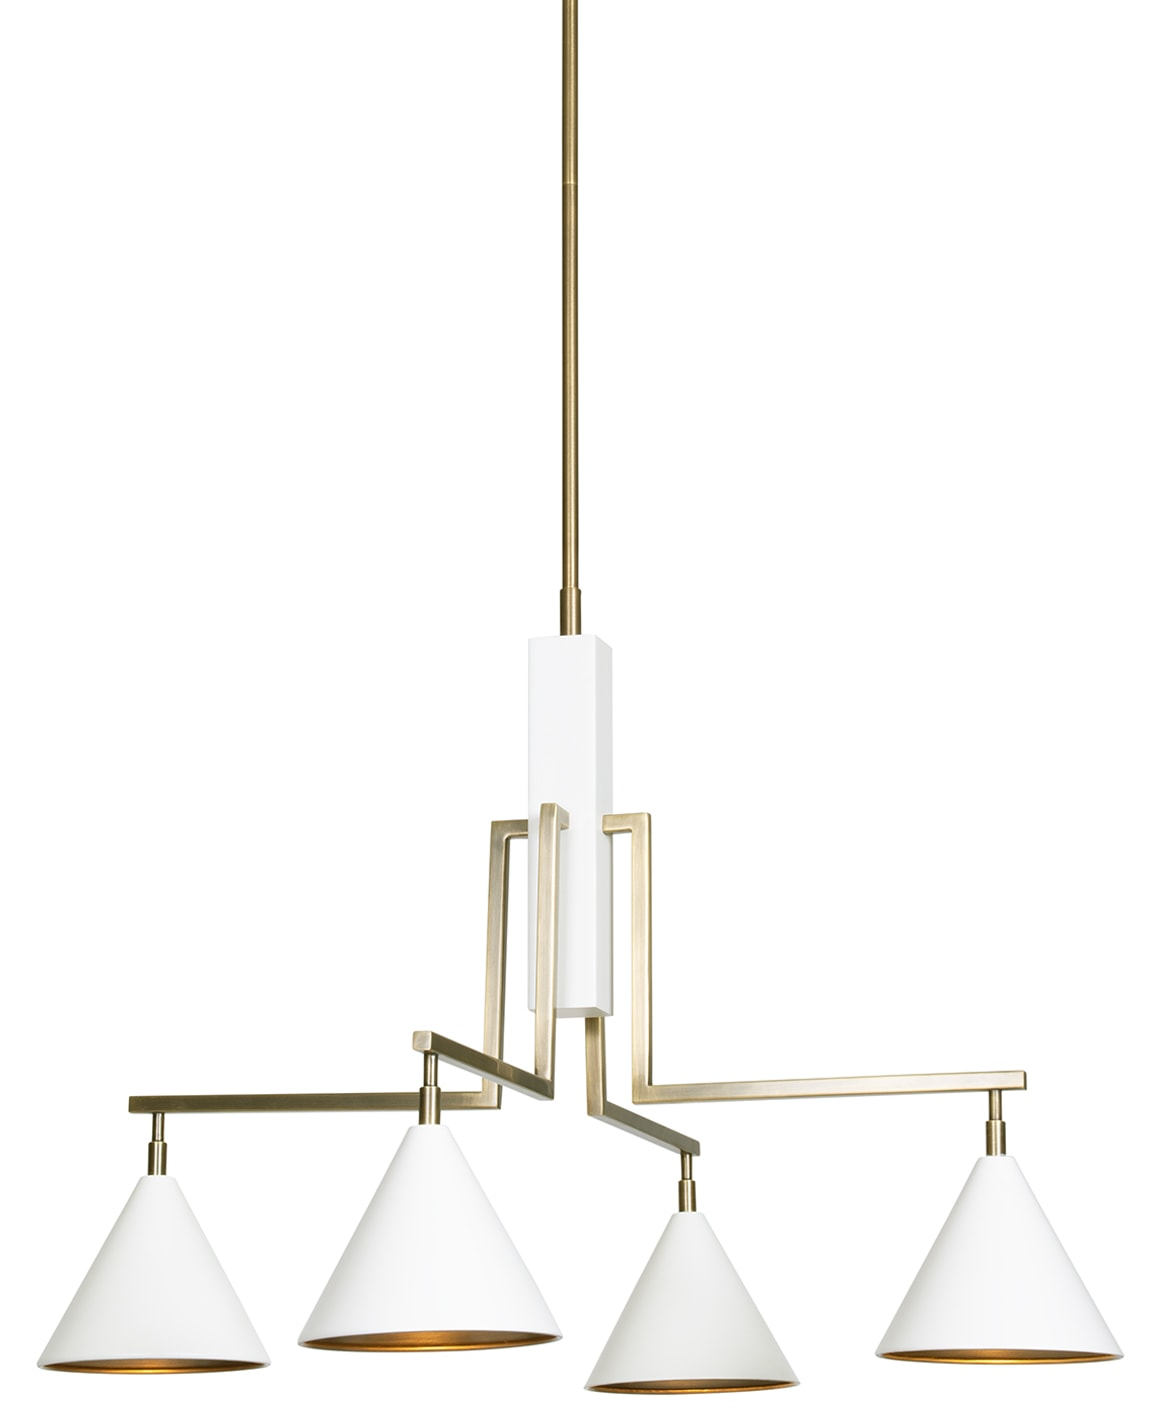 FlowDecor Sparrow Chandelier in metal with matte off-white & antique brass finishes (# 6050)